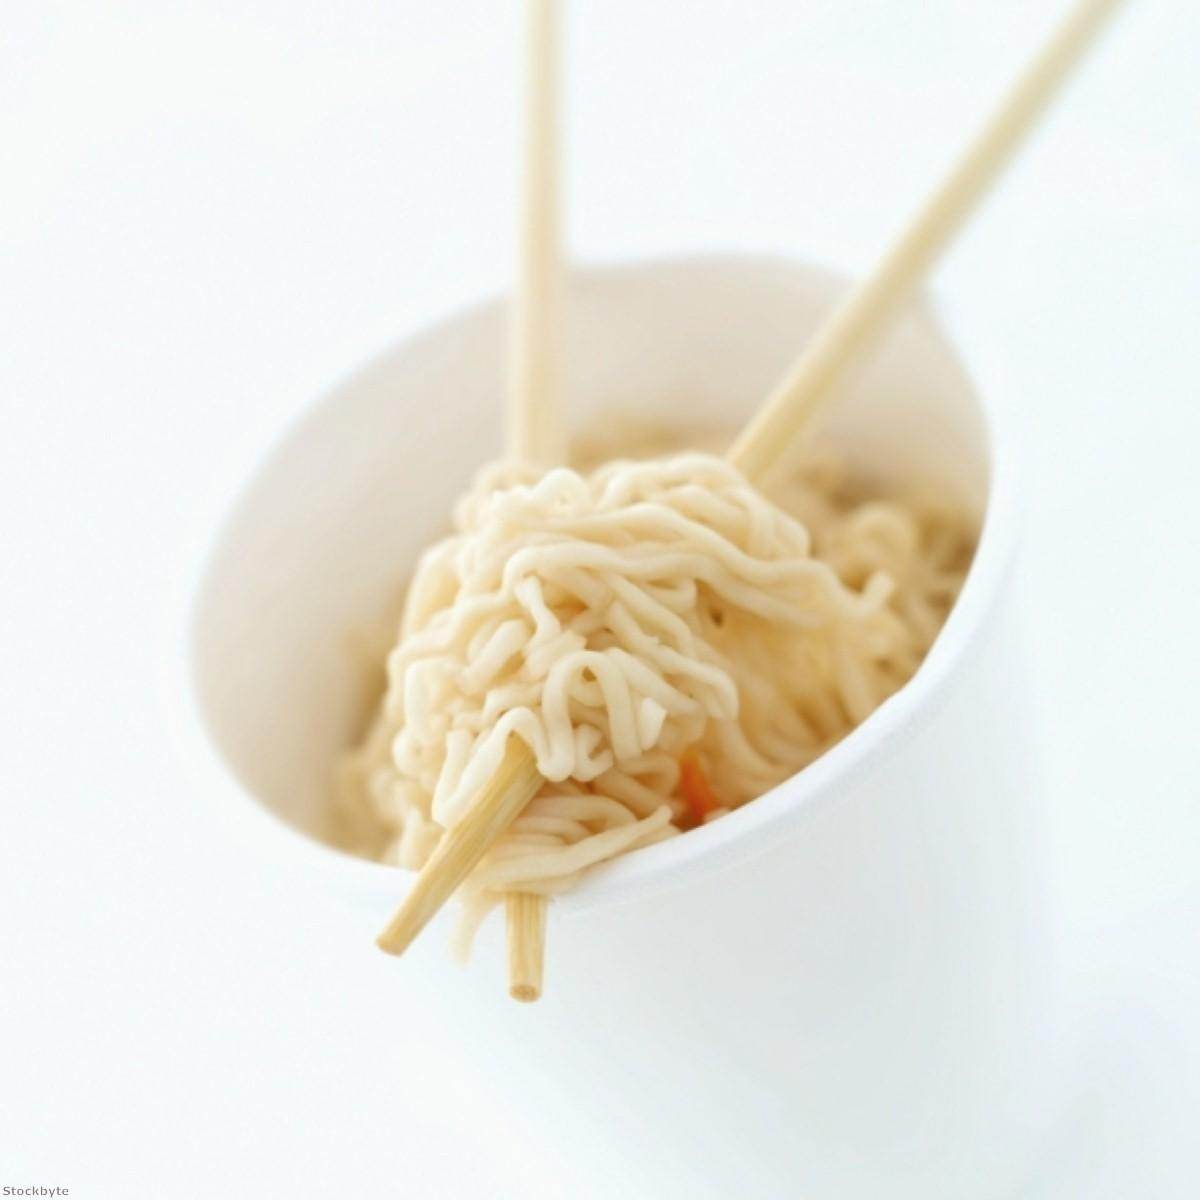 Could eating noodles increase stroke risk?